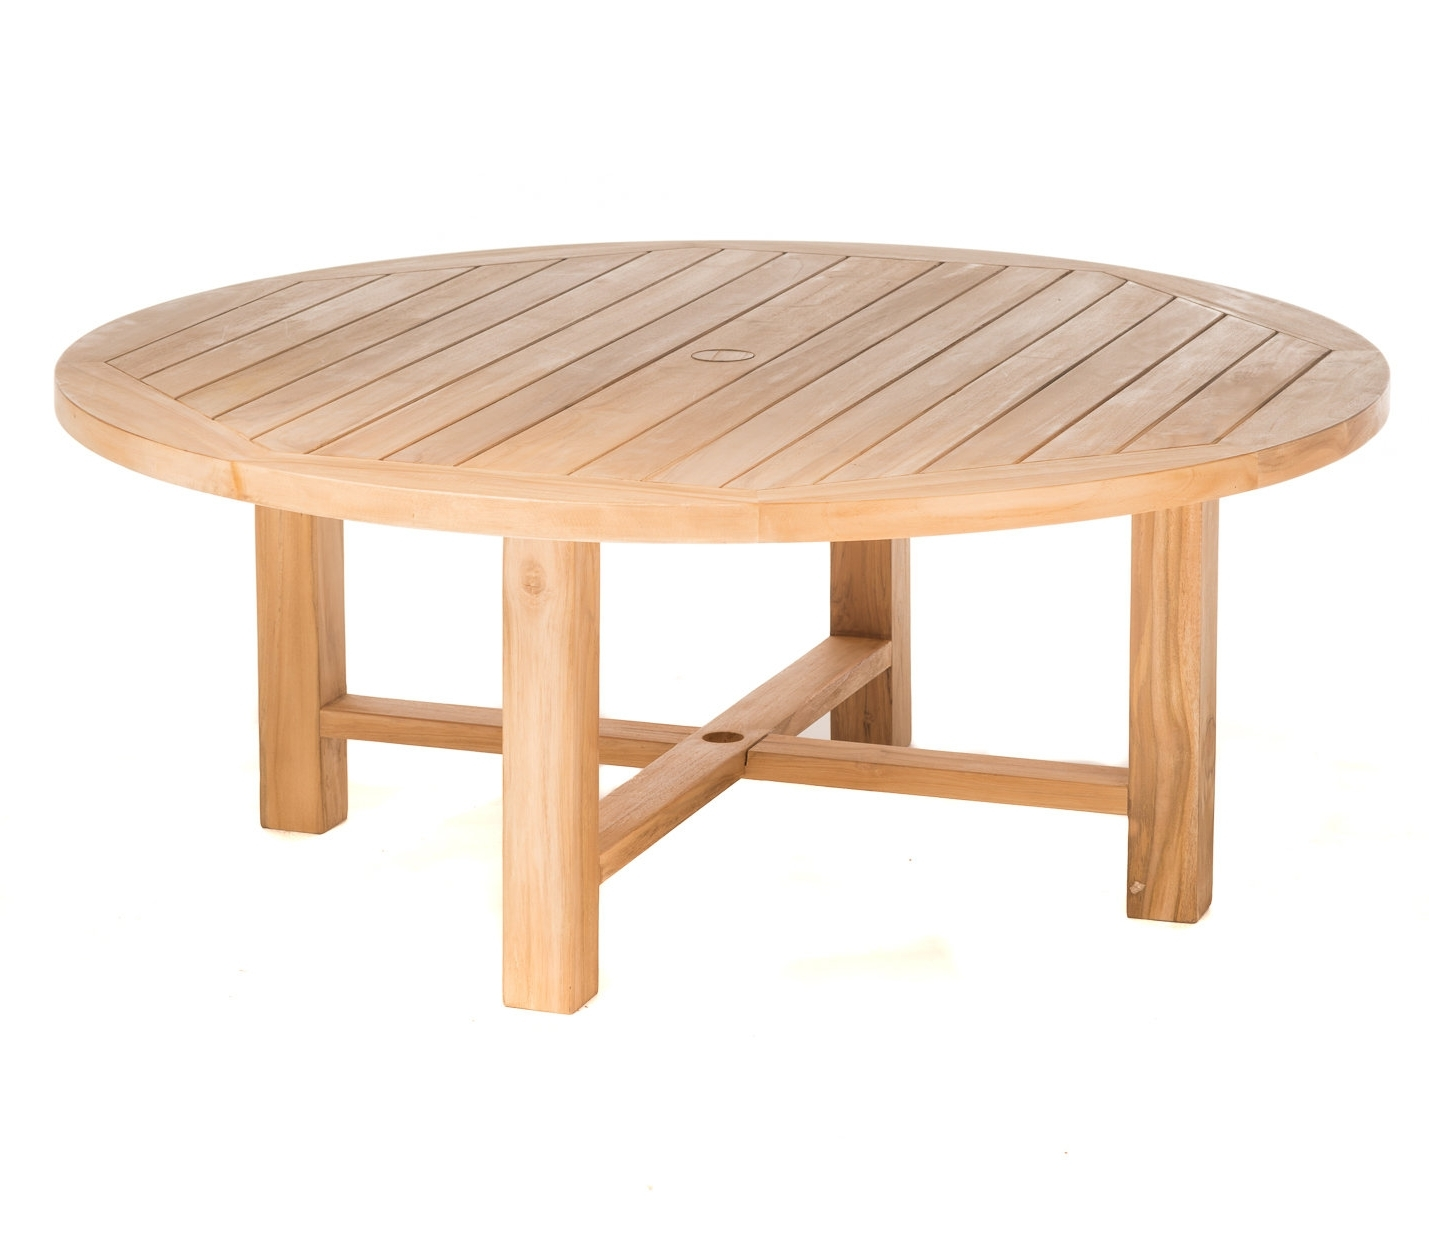 Most Recently Released Round Teak Coffee Tables Regarding Rosecliff Heights Earnest Round Teak Coffee Table (View 16 of 20)